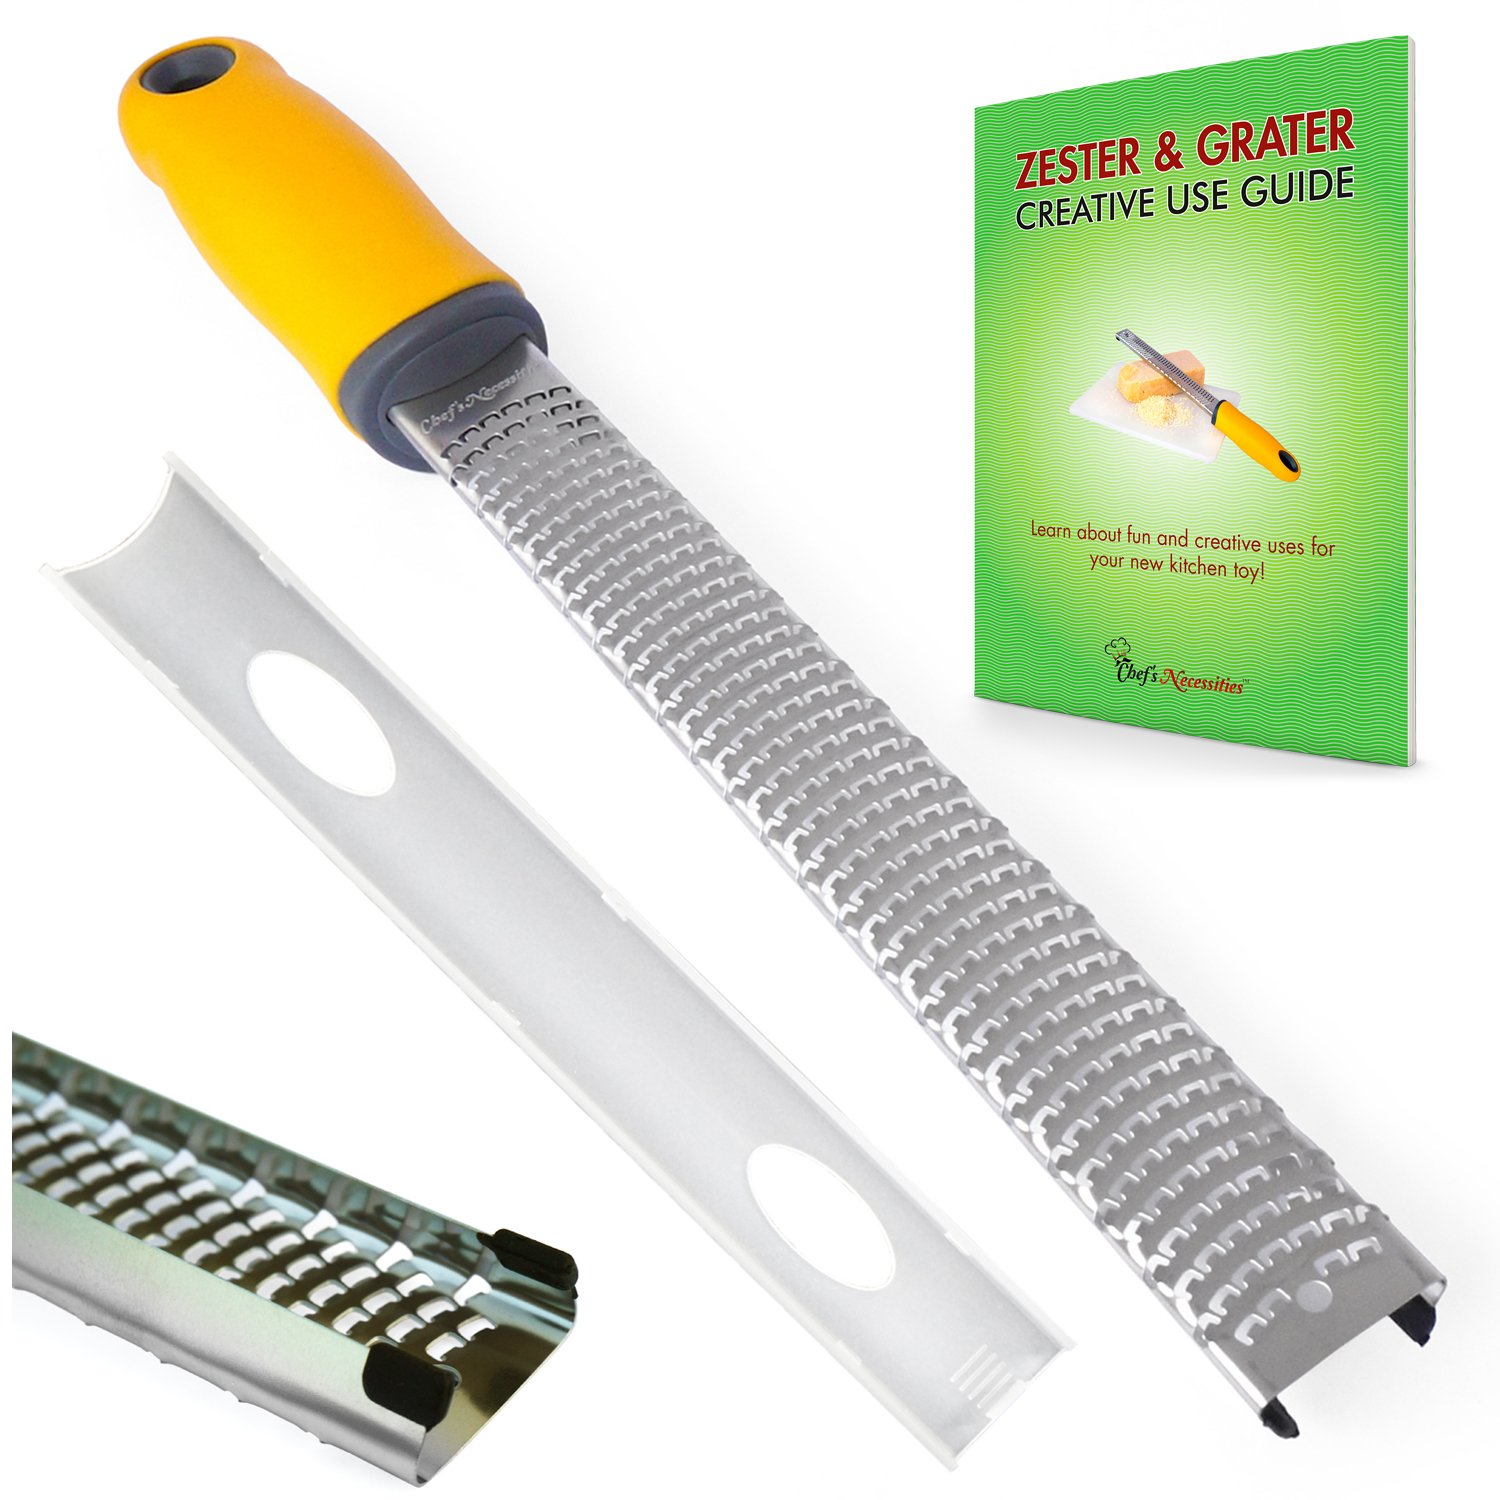 Chef's Necessities Cheese Grater & Zester - High Quality Stainless Steel Blade + Protective Cover Chef's Necessities TM